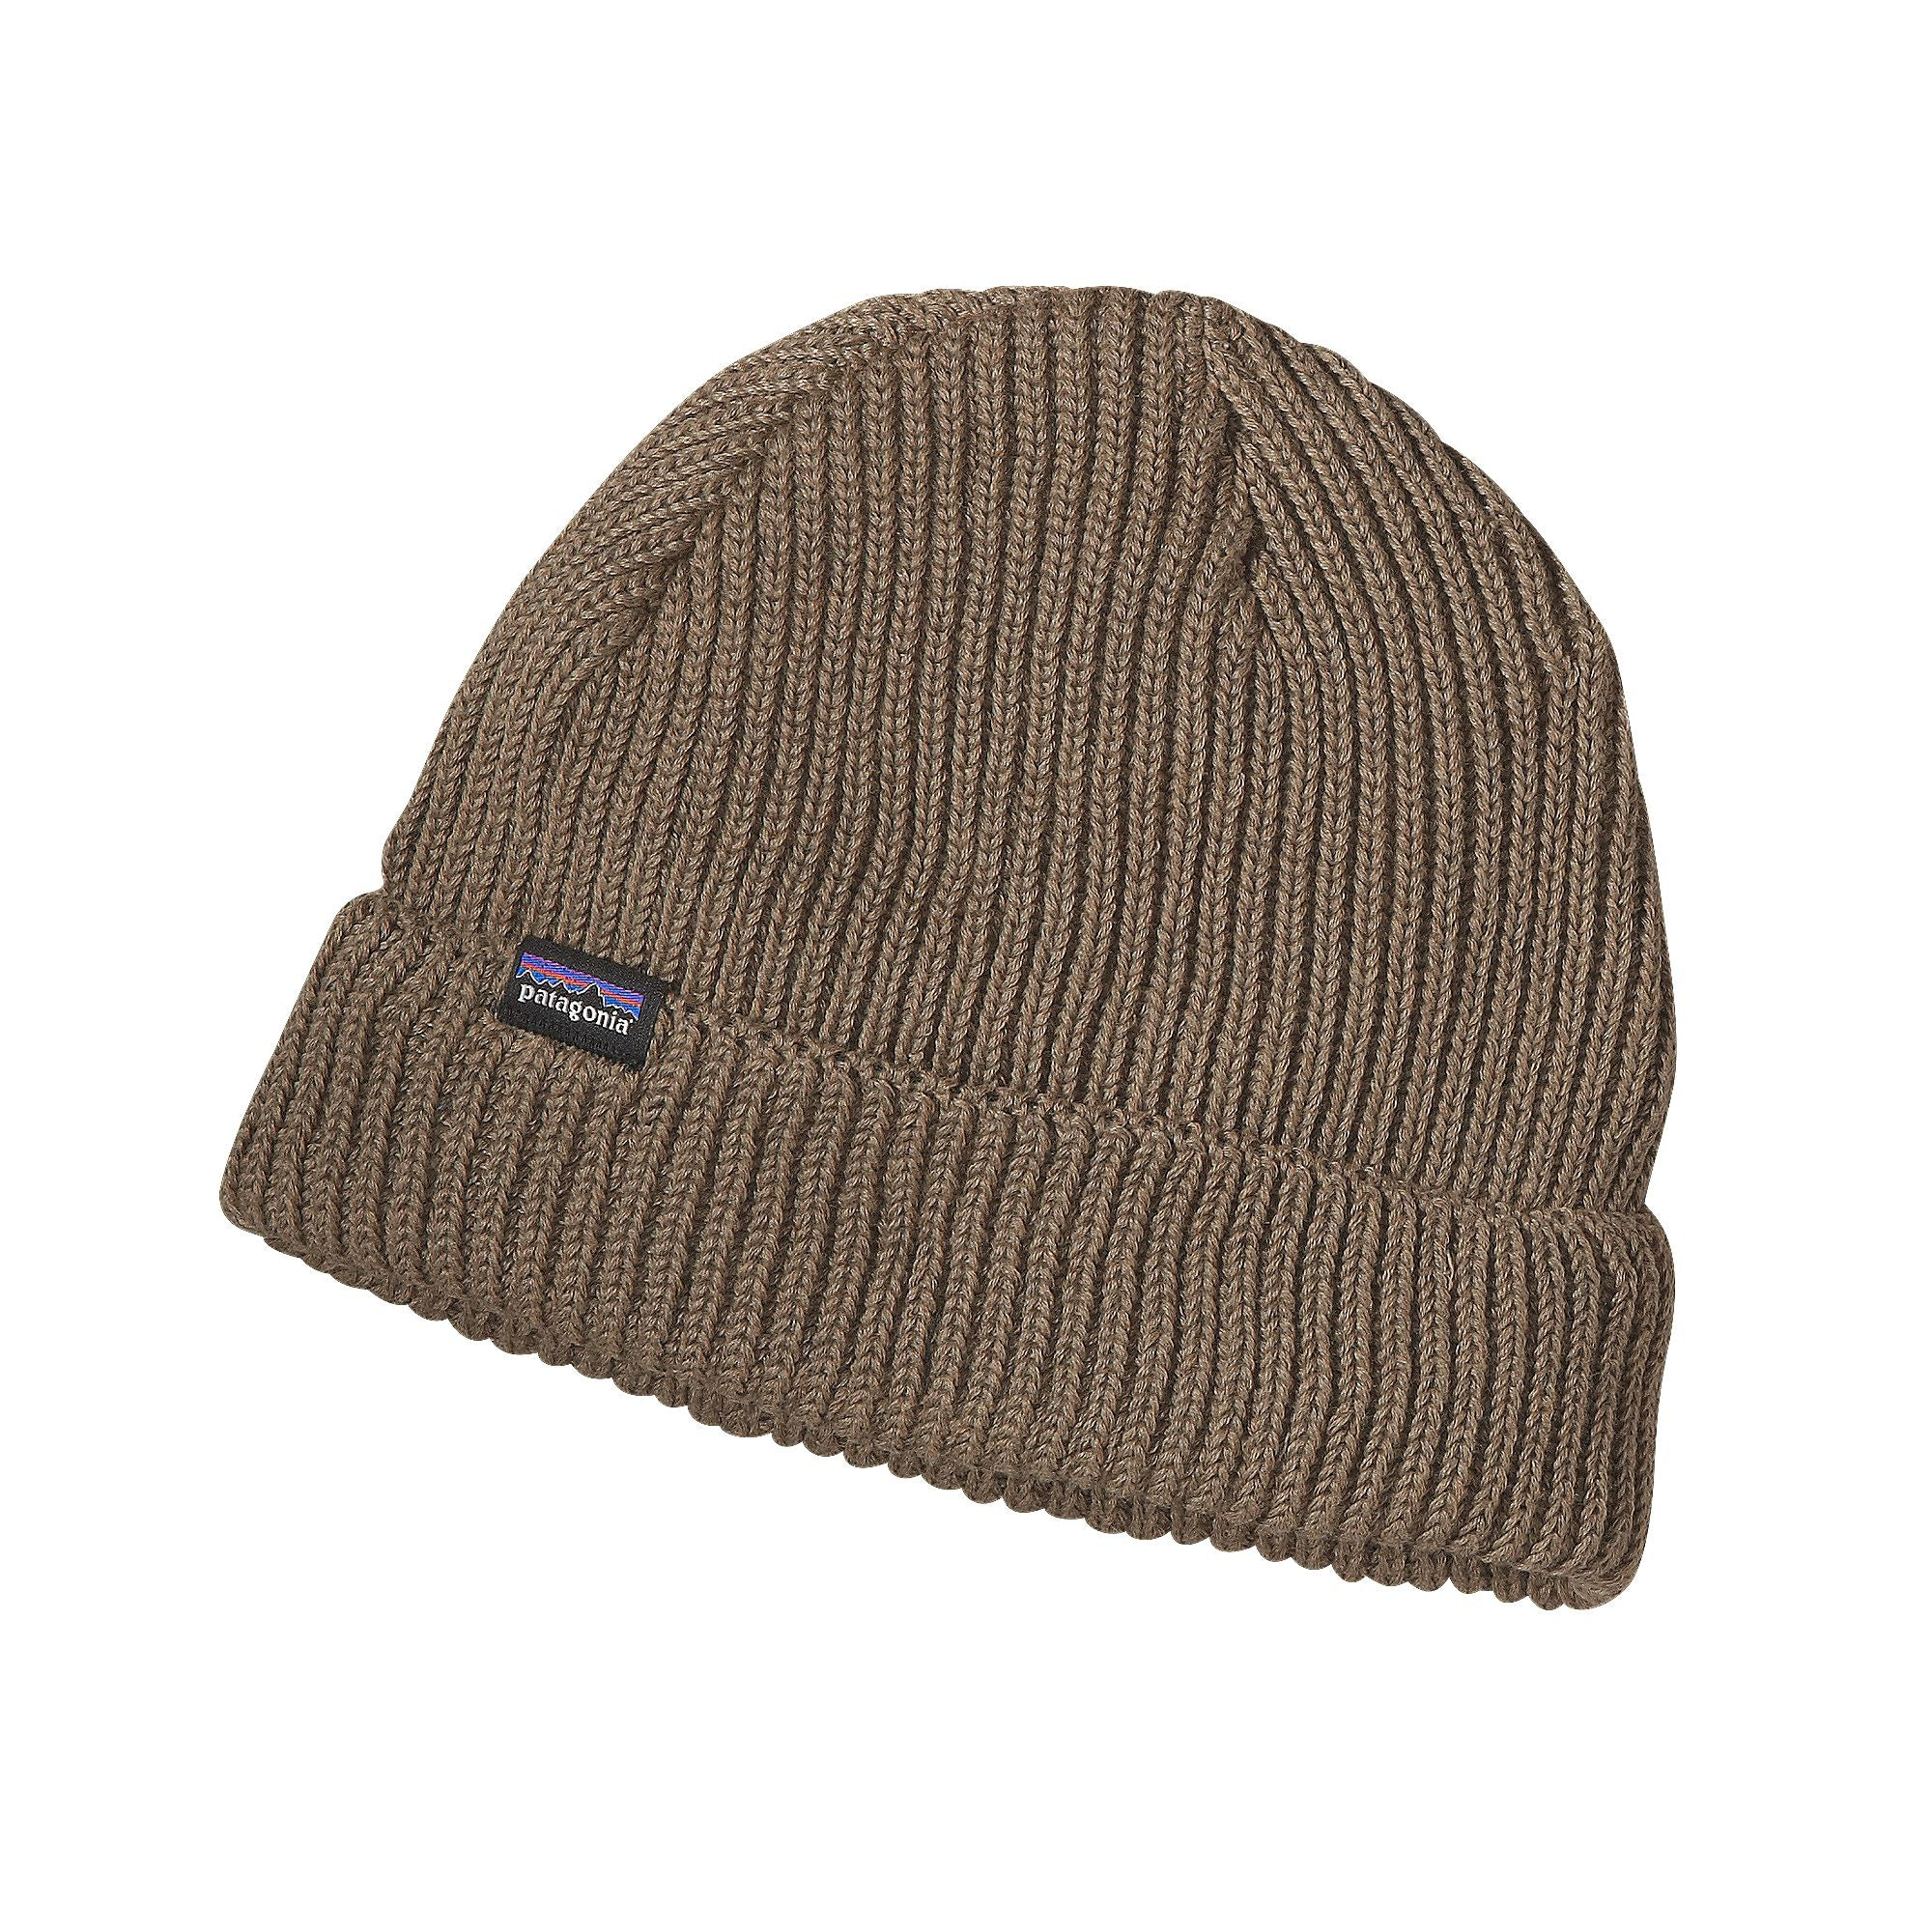 2c955255cd8 Patagonia s Fisherman s Rolled Beanie - Iron Bow Fly Shop